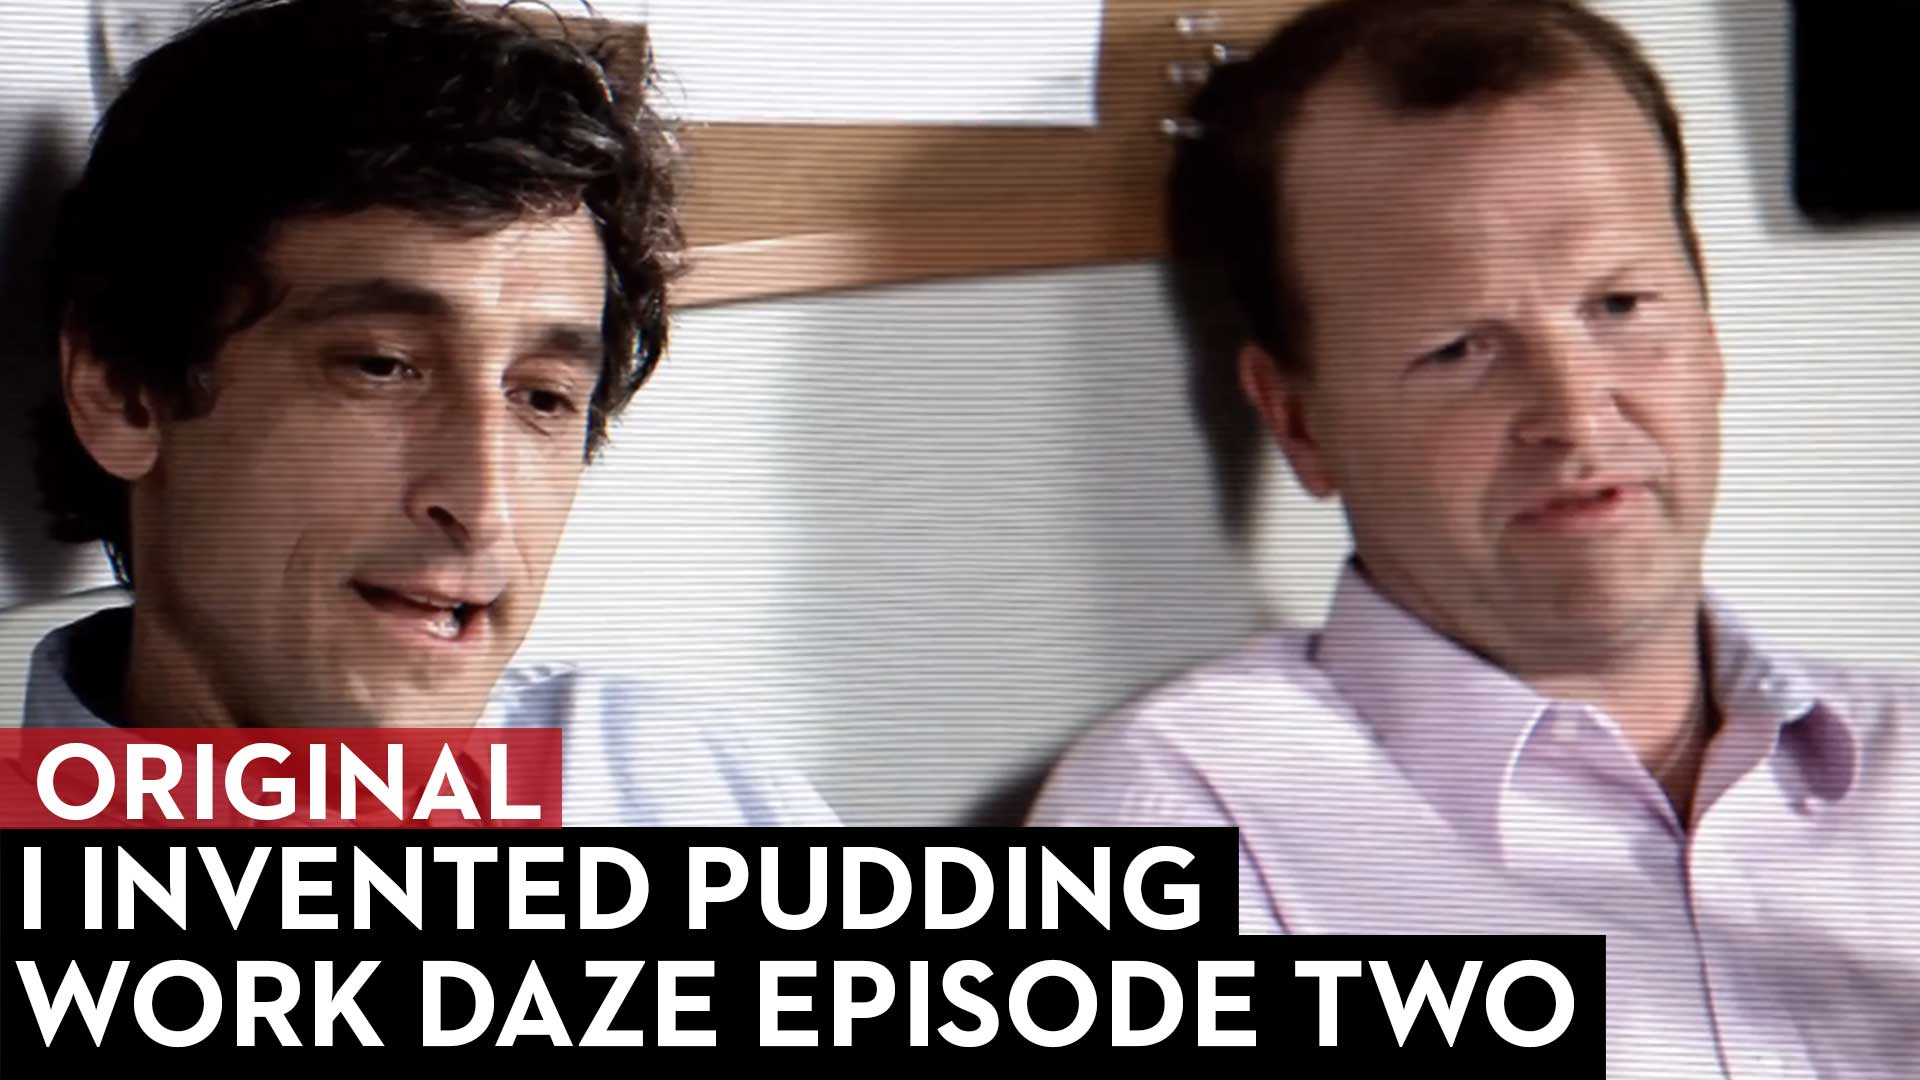 Work Daze Episode Two: I Invented Pudding